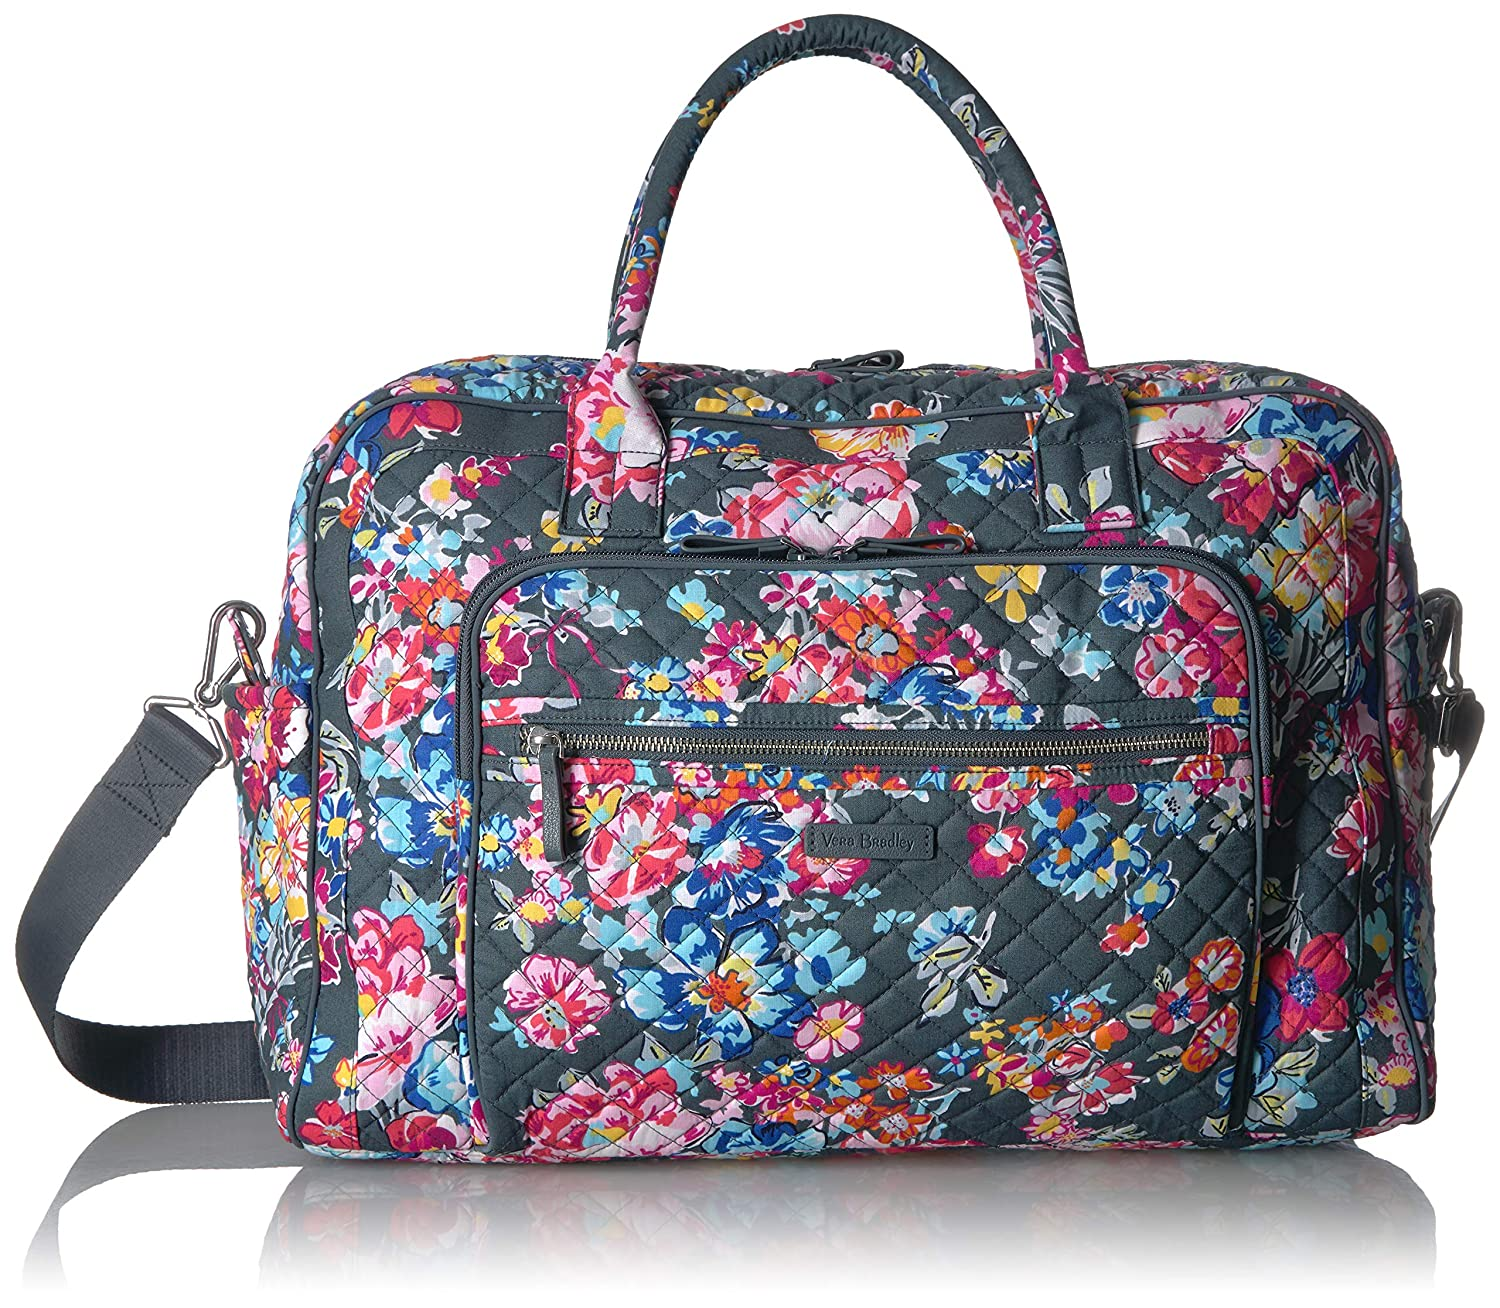 d7ac82a94a96 Amazon.com  Vera Bradley womens Iconic Weekender Travel Bag ...